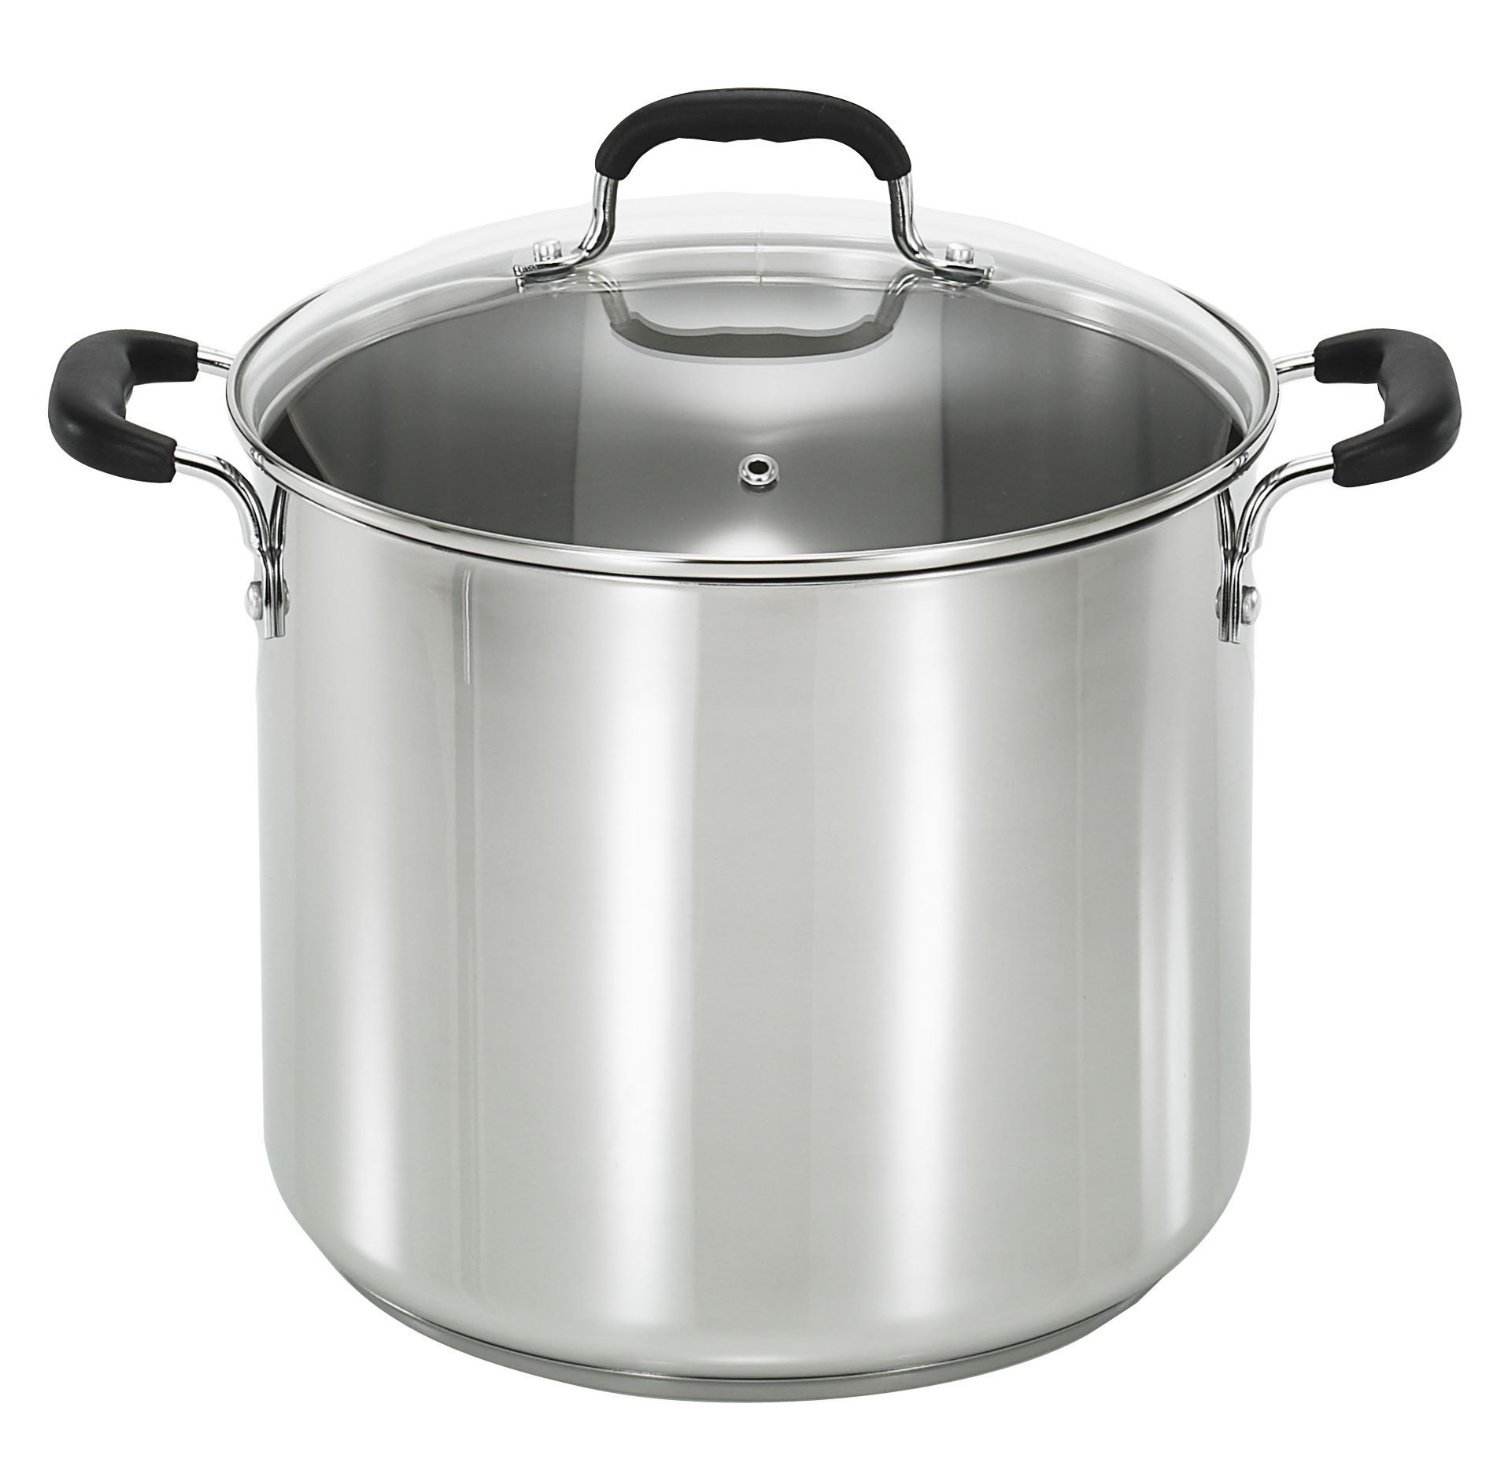 T-fal C99863 Stainless Steel Oven Safe Dishwasher Safe PFOA Free Stock Pot Cookware, 12-Quart, Silver